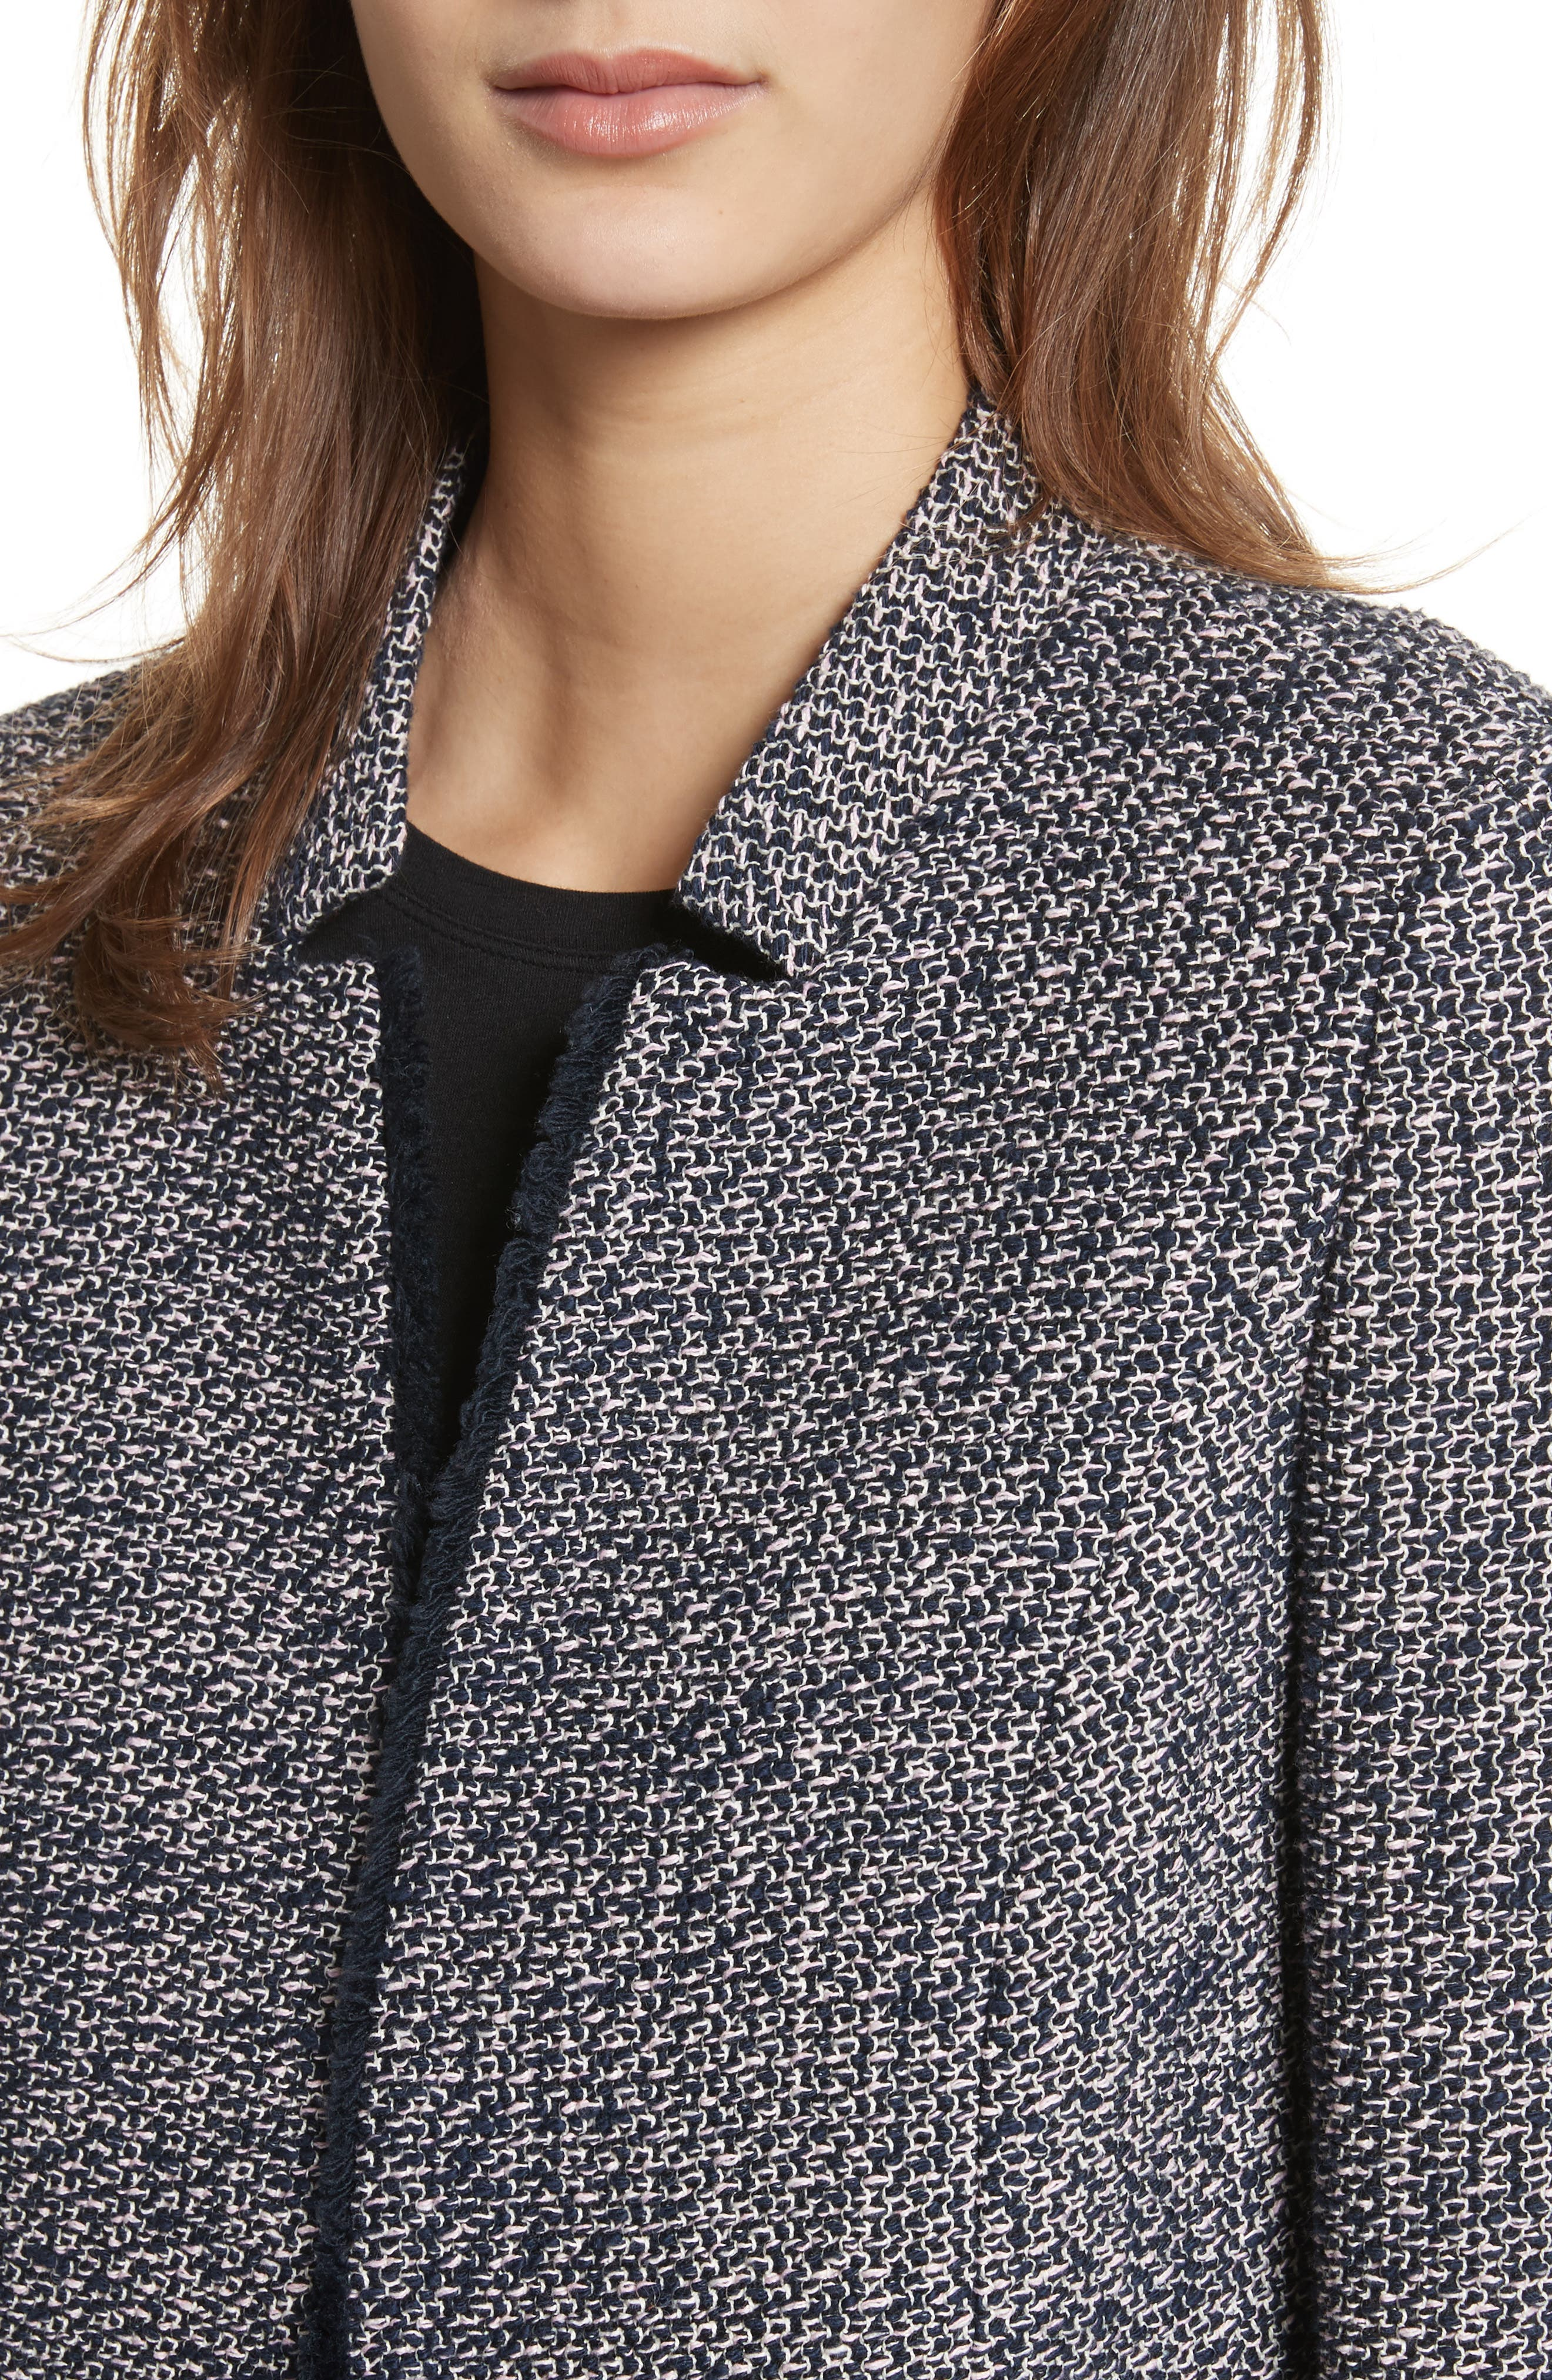 Notch Collar Tweed Jacket,                             Alternate thumbnail 4, color,